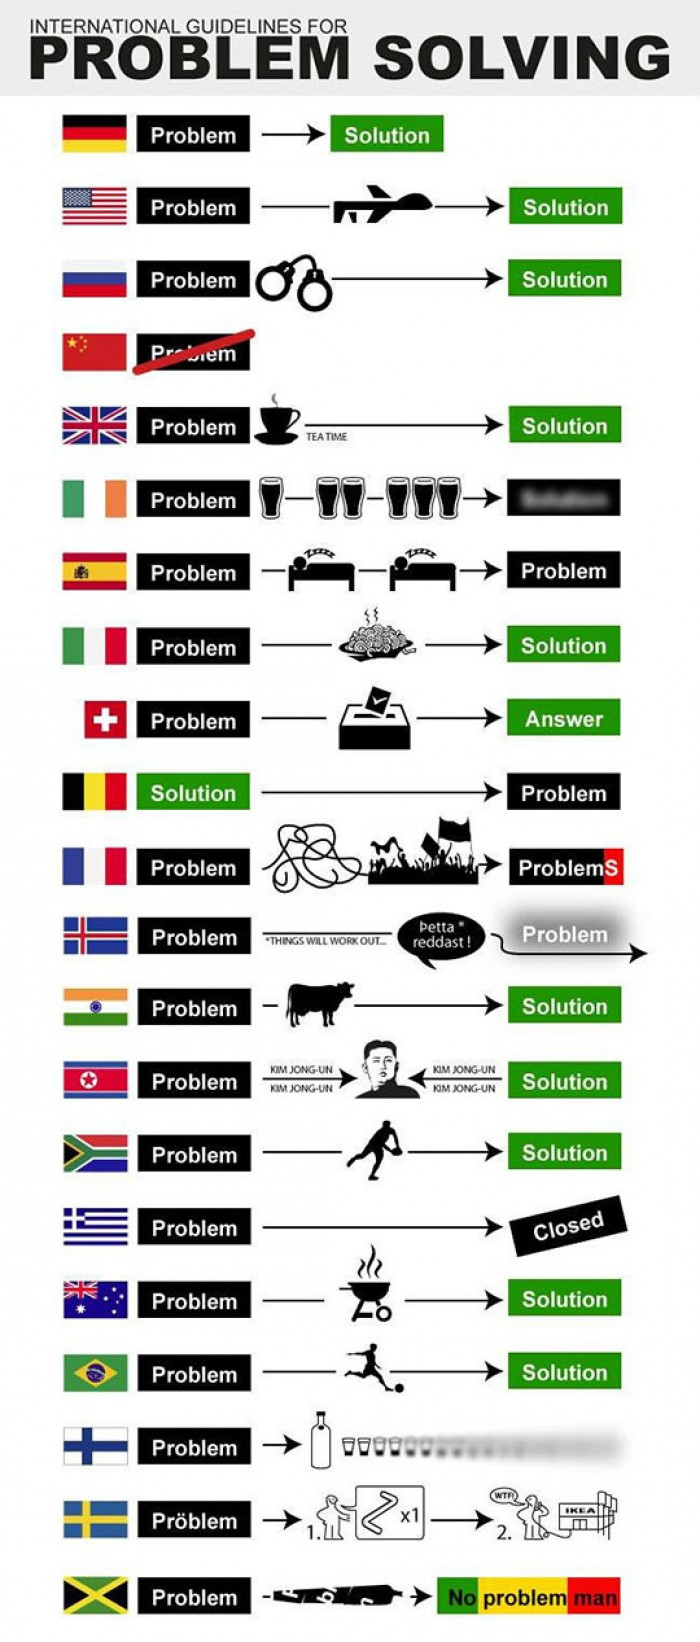 Different Countries' Problem Solving